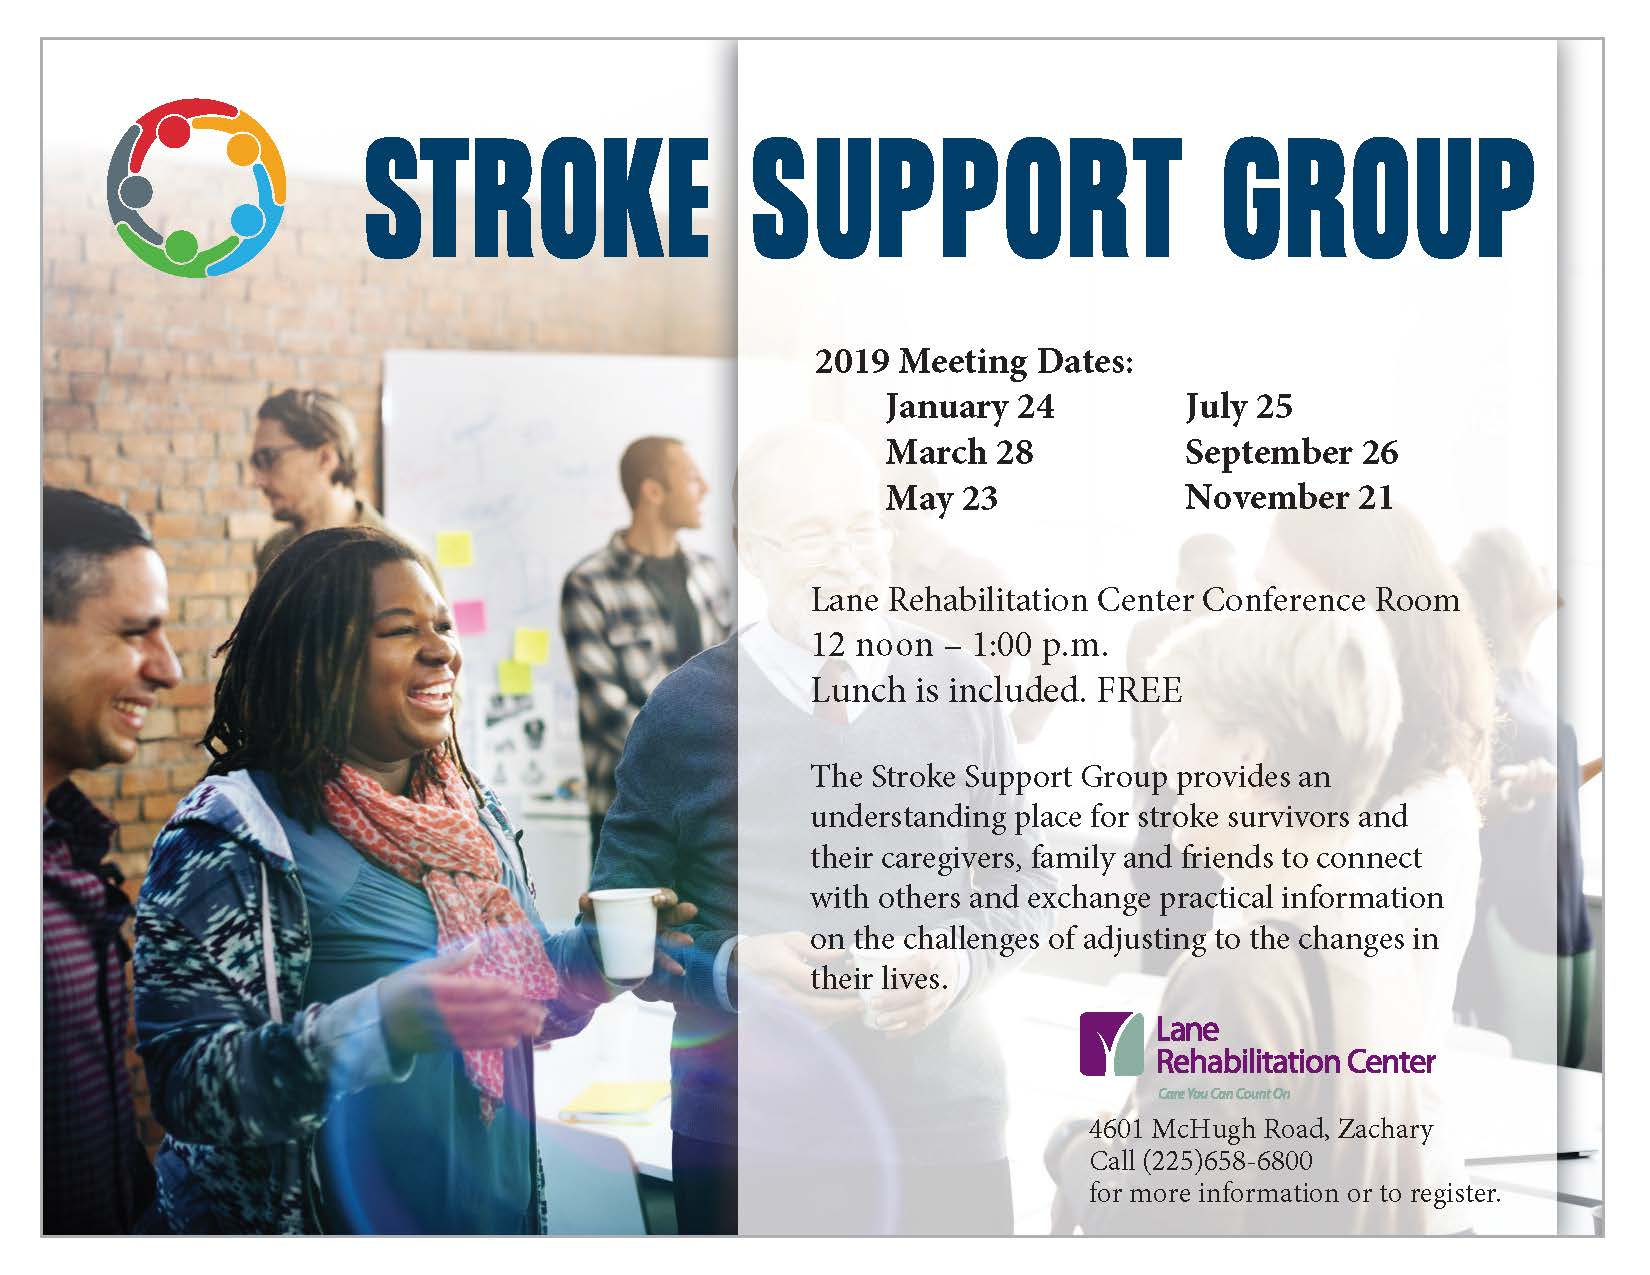 Stroke Support Group 2019